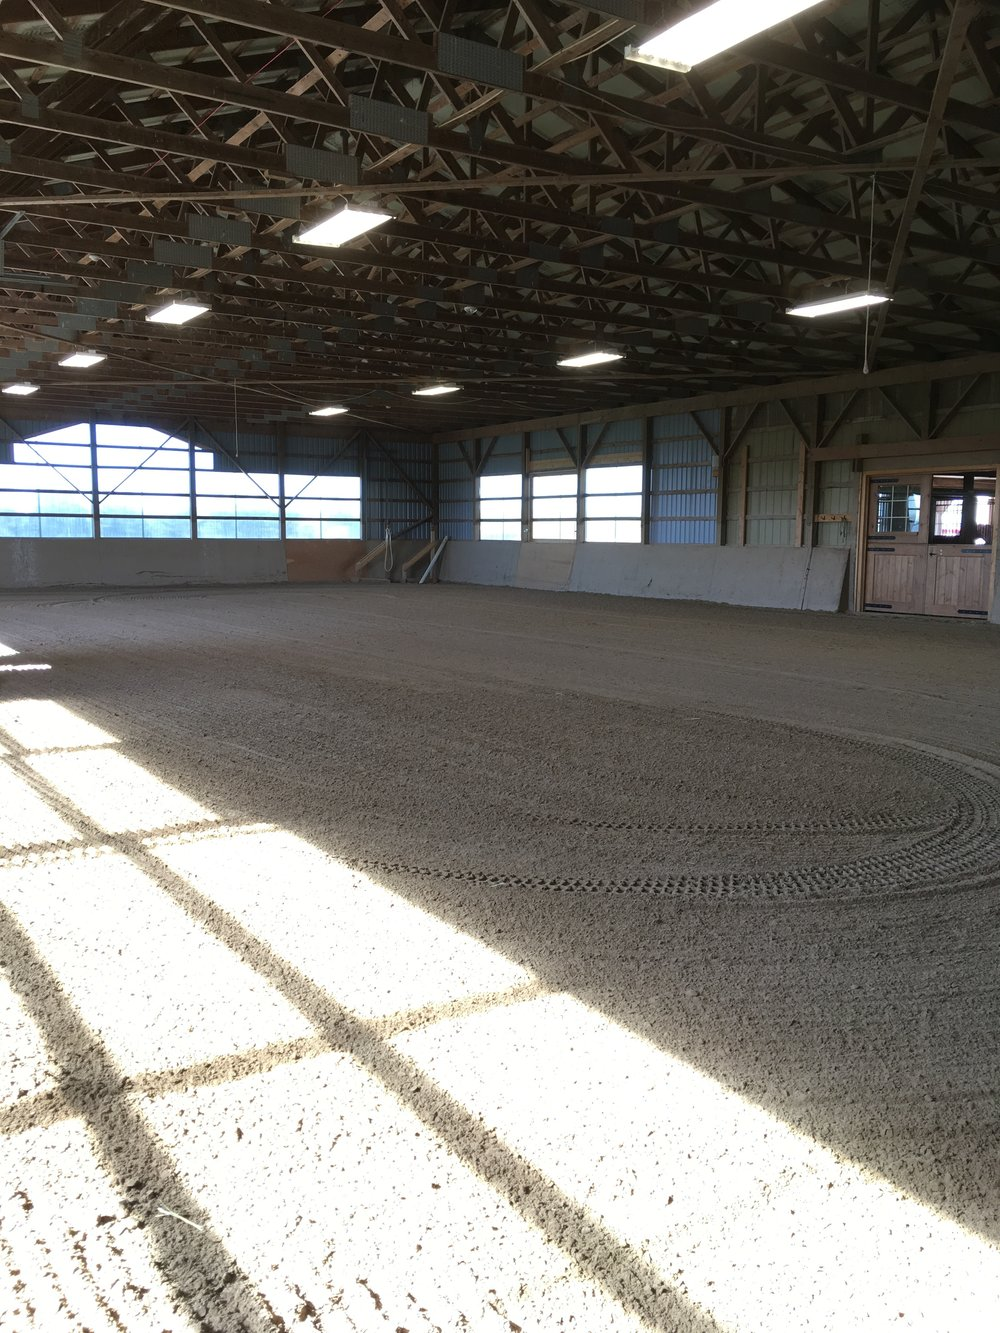 The second indoor arena, measuring 104' by 60'.